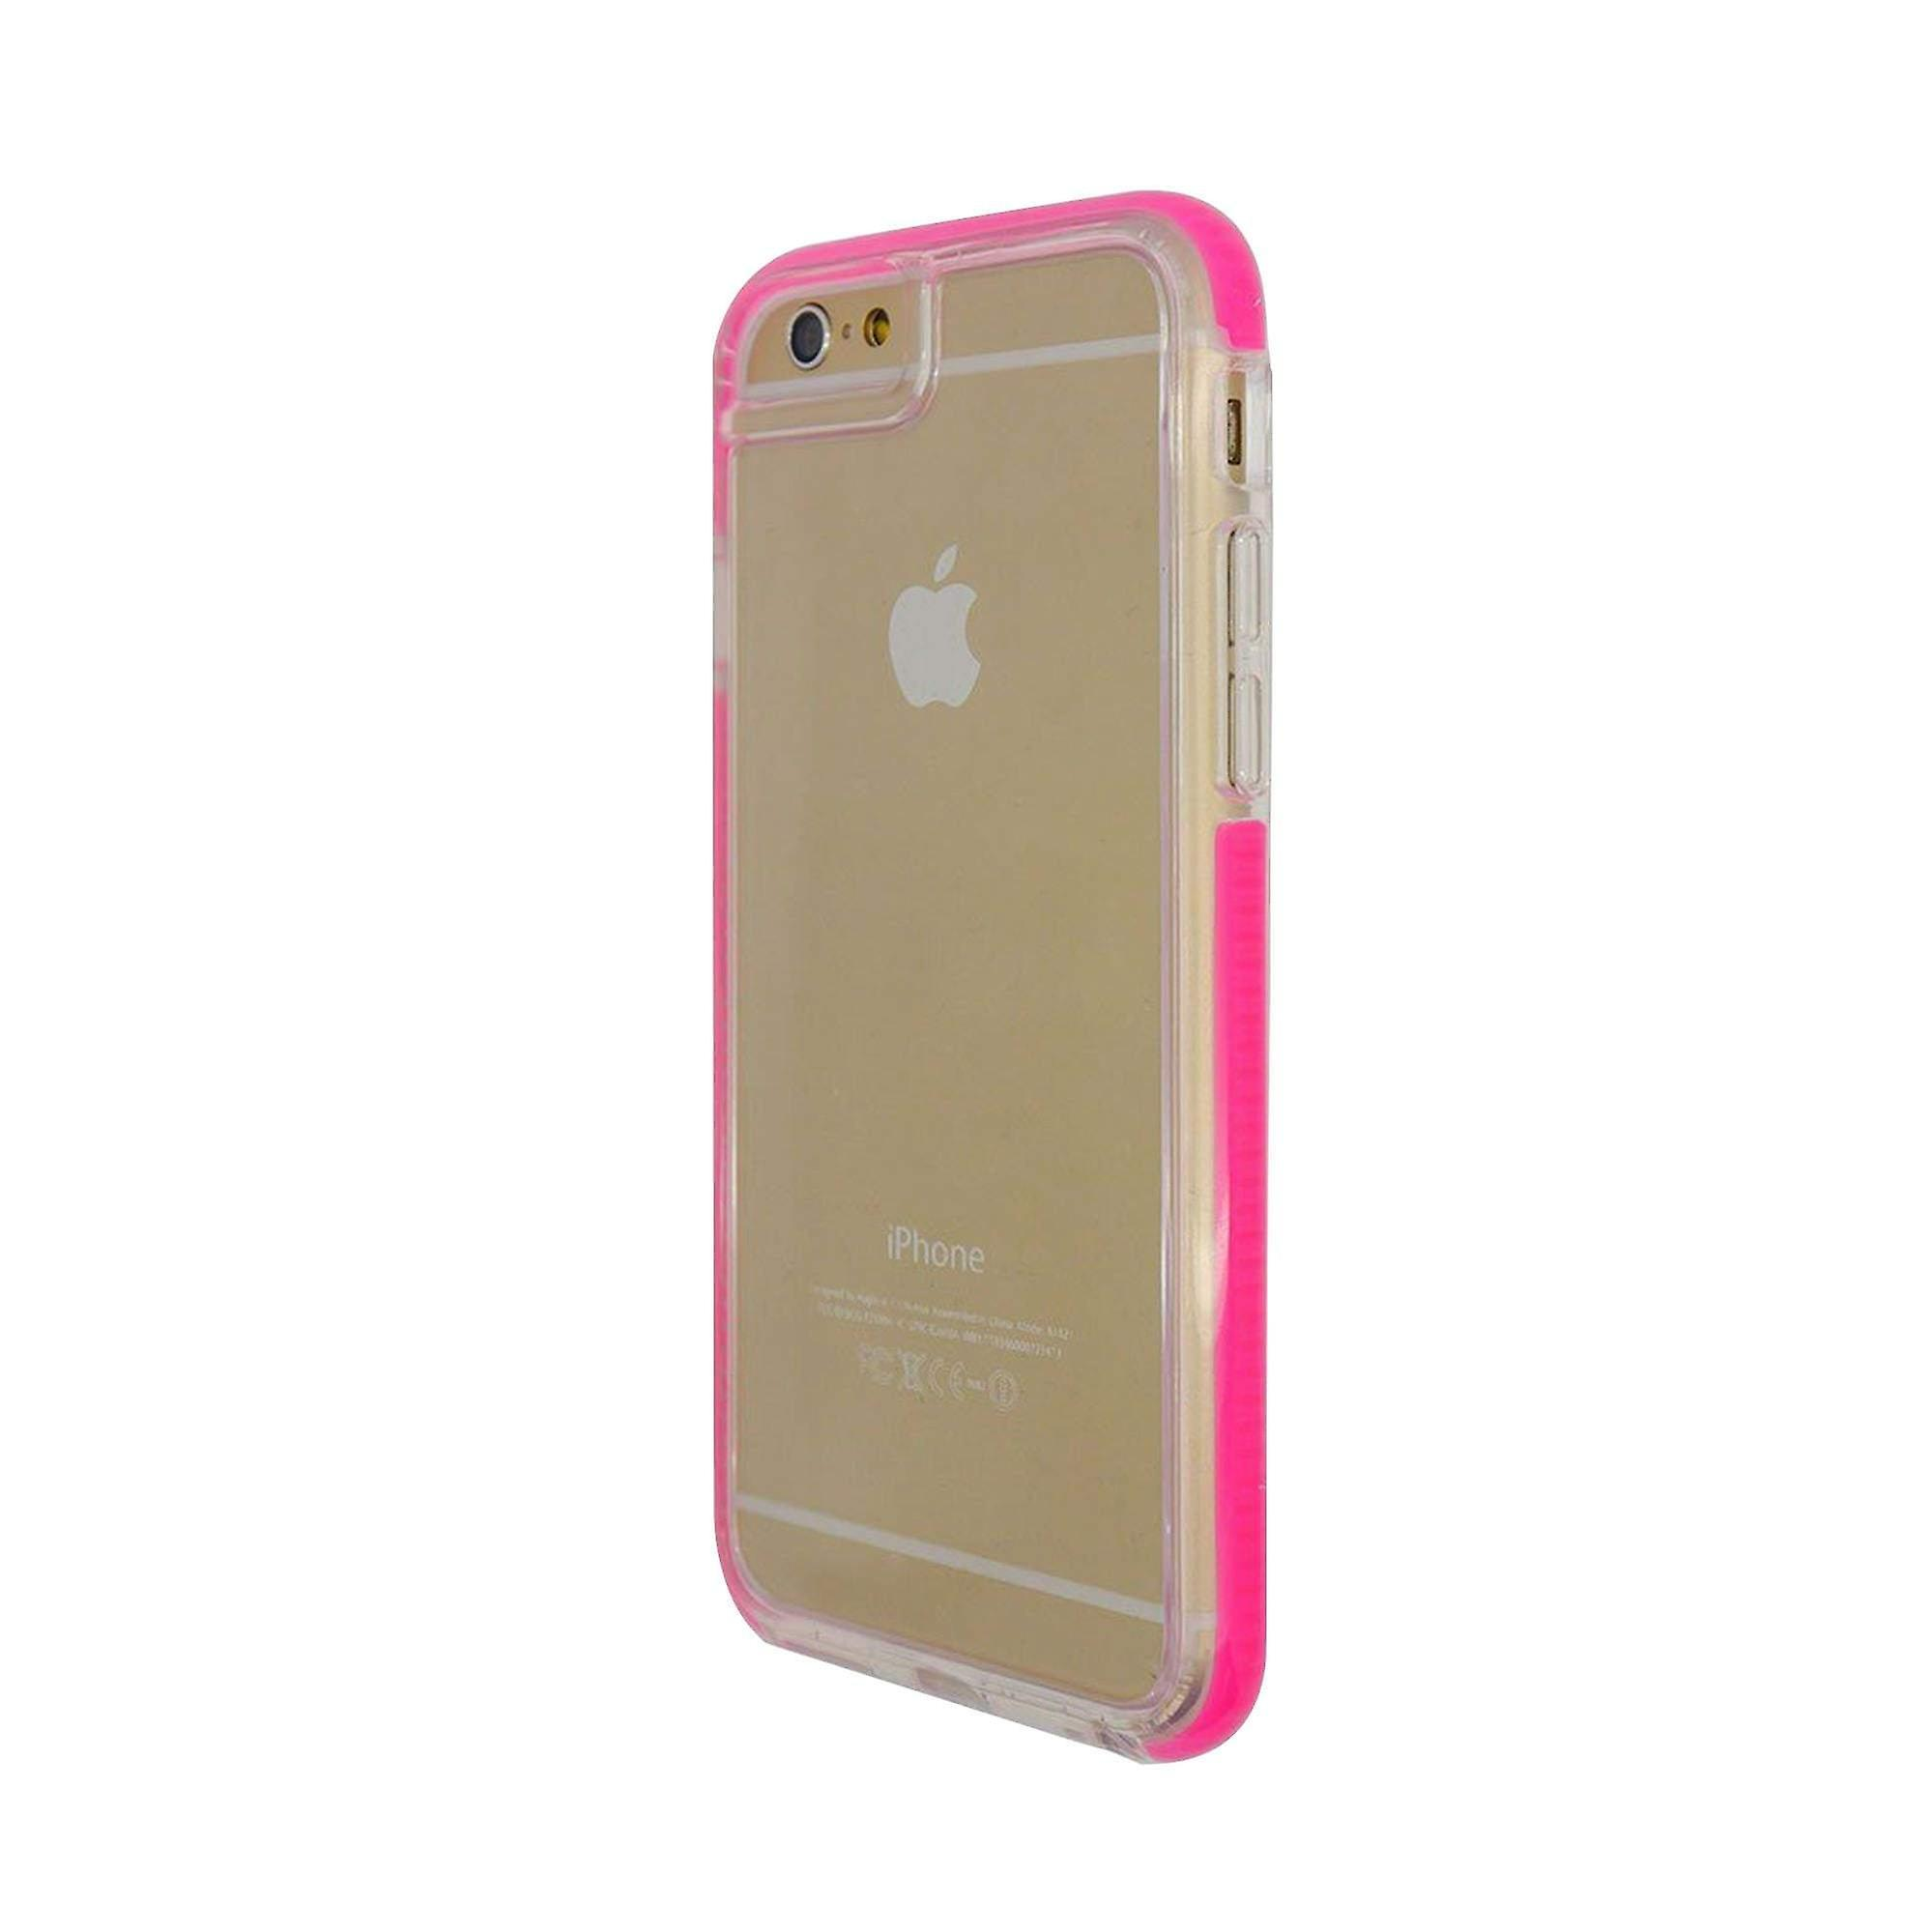 iPhone 6/6s Armour Protect Clear View Hard Shell Pink